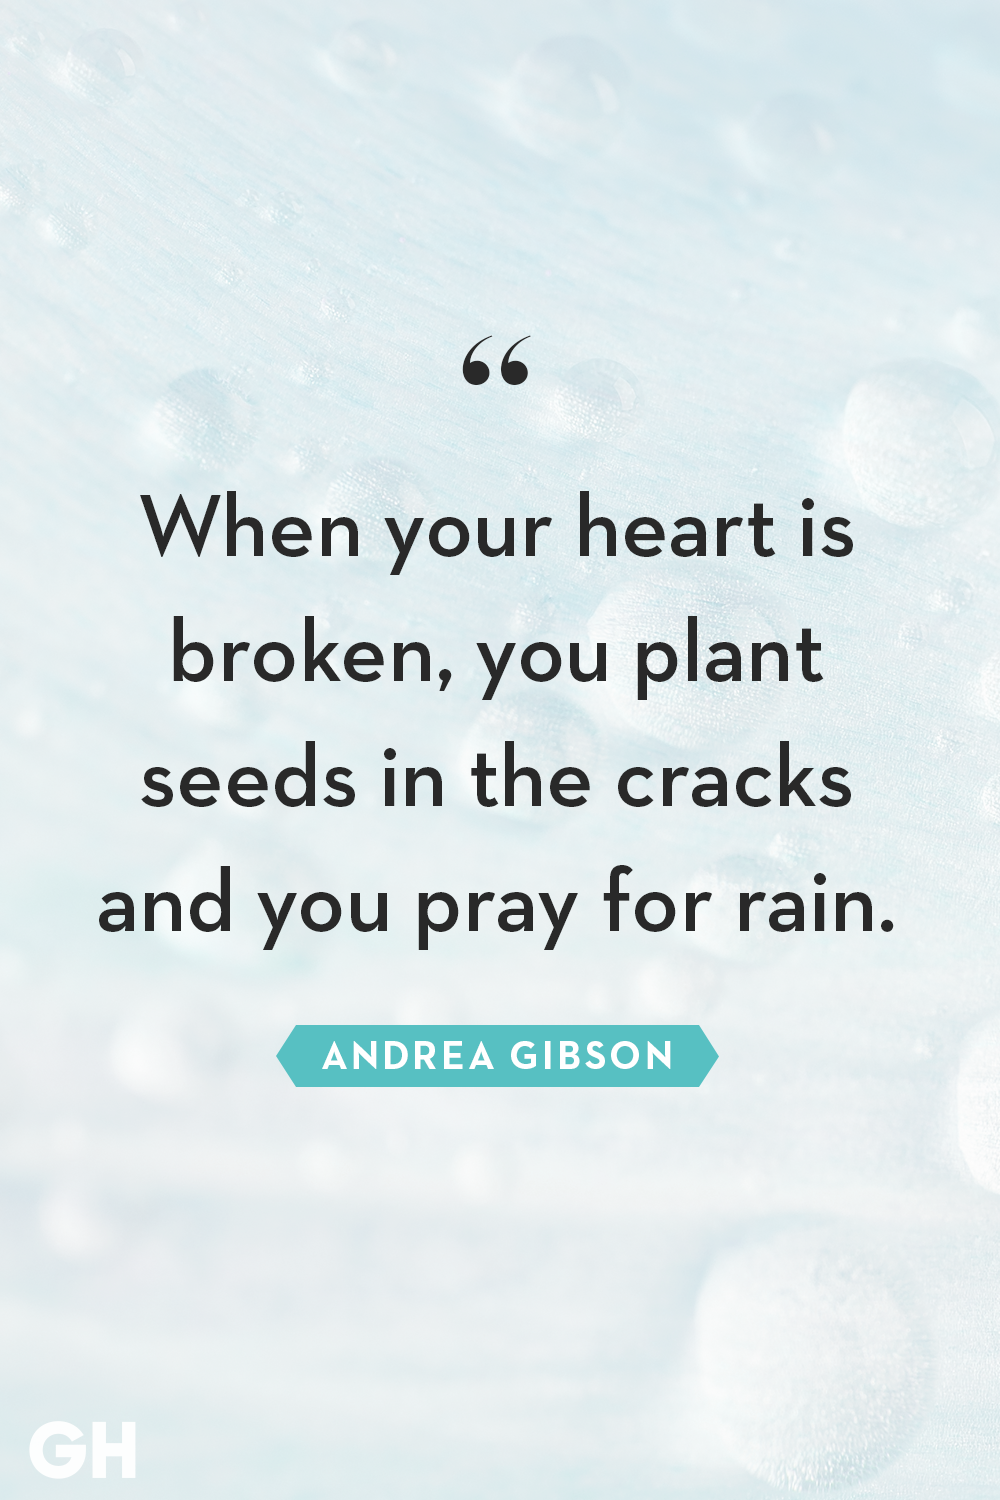 Quotes to help heal a broken heart